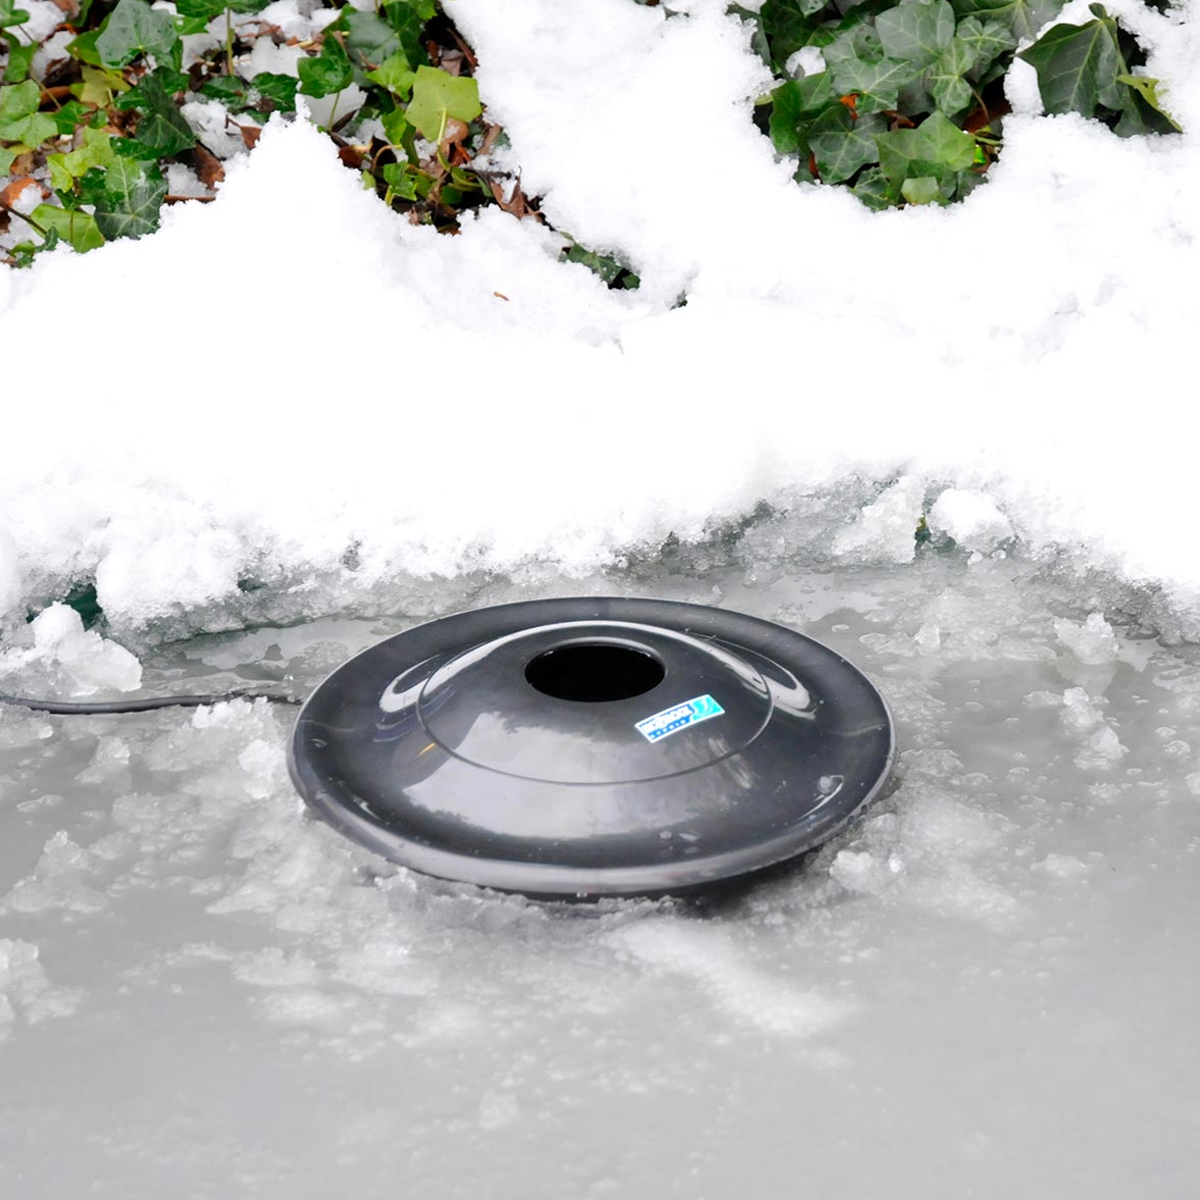 Hozelock floating dome fish pond heater de icer winter for Floating fish pond